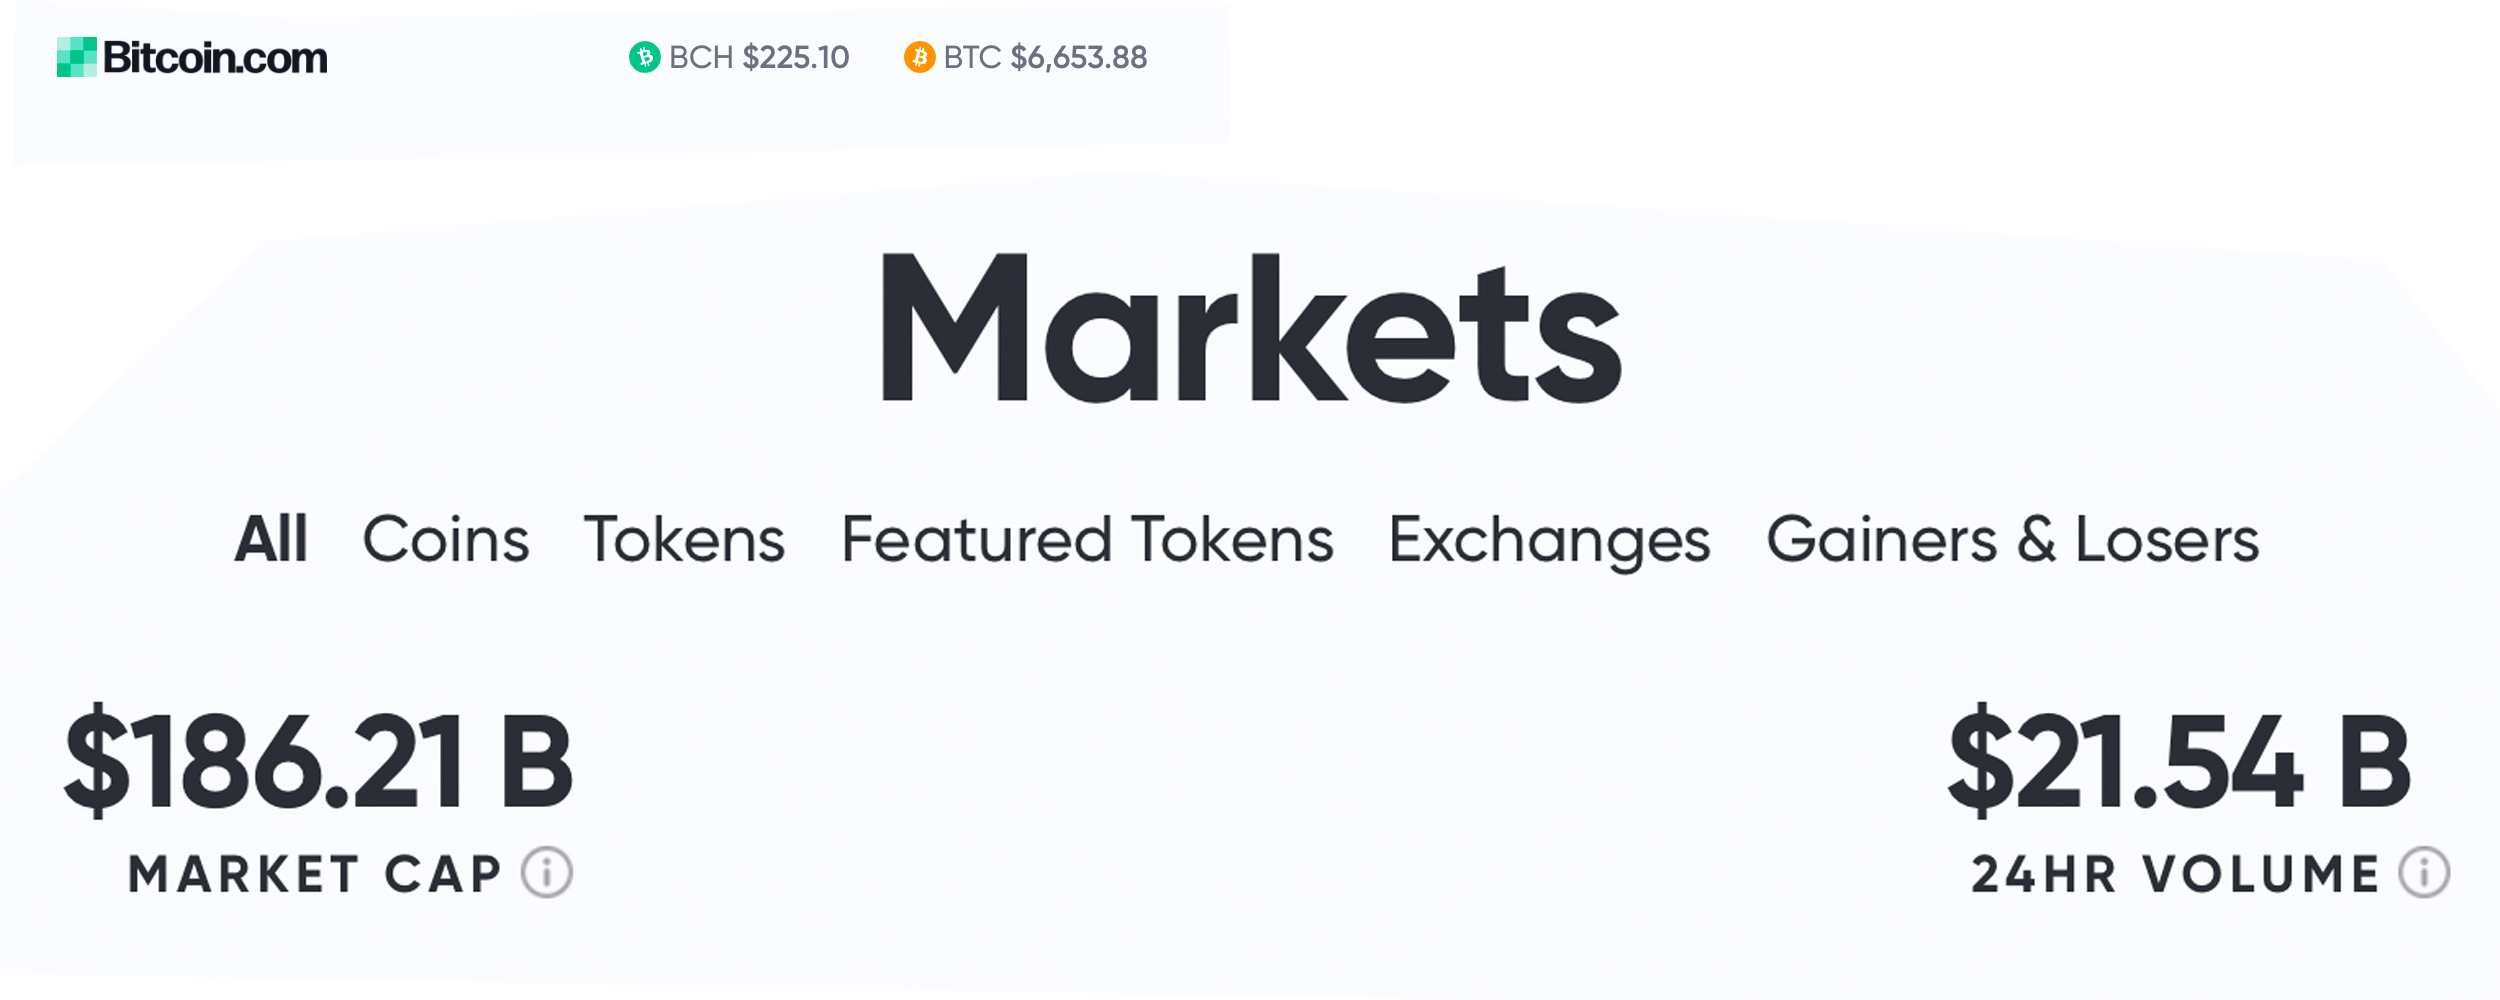 Market Update: Slew of Unknown Coins Has Seen Considerable Gains Since 'Black Thursday'